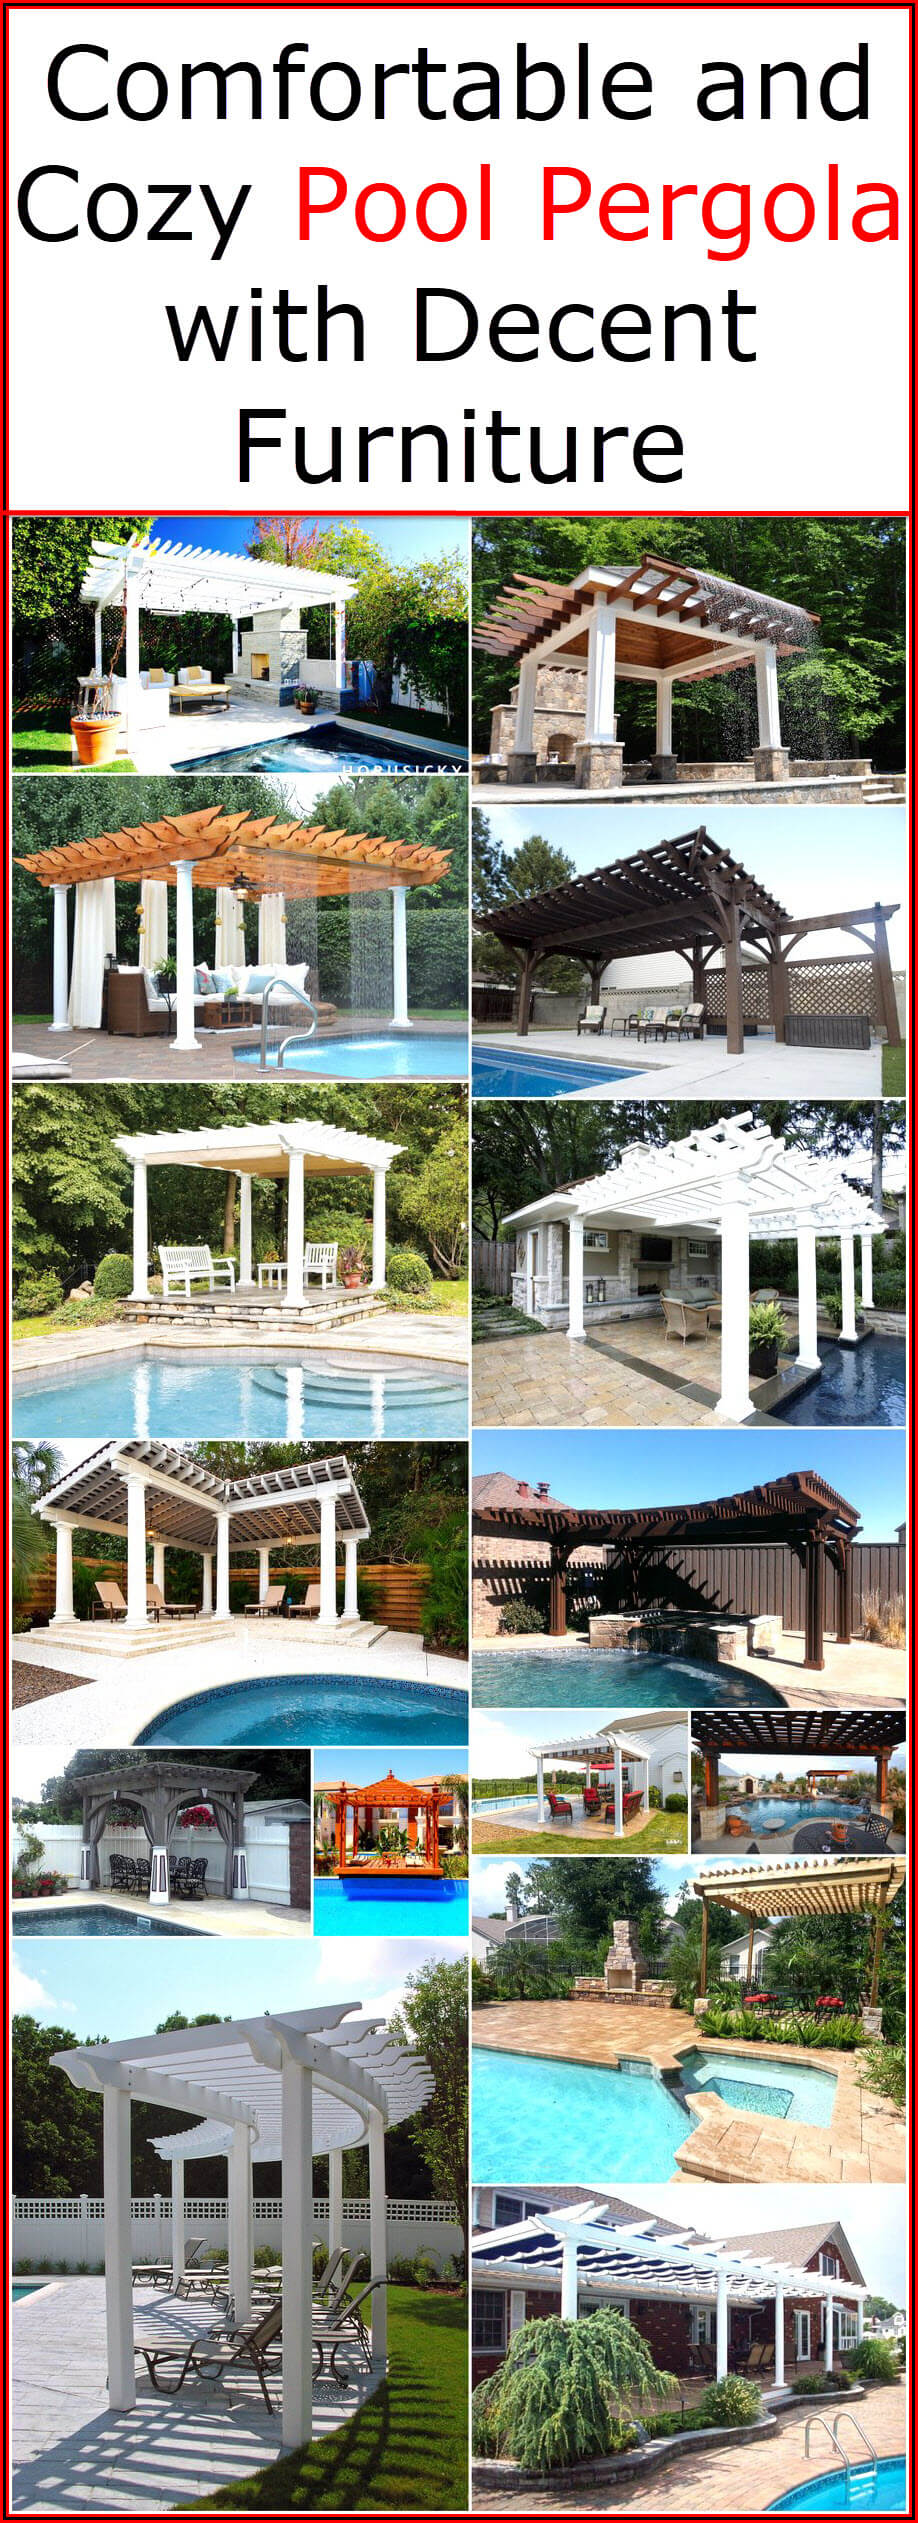 Comfortable and Cozy Pool Pergola with Decent Furniture